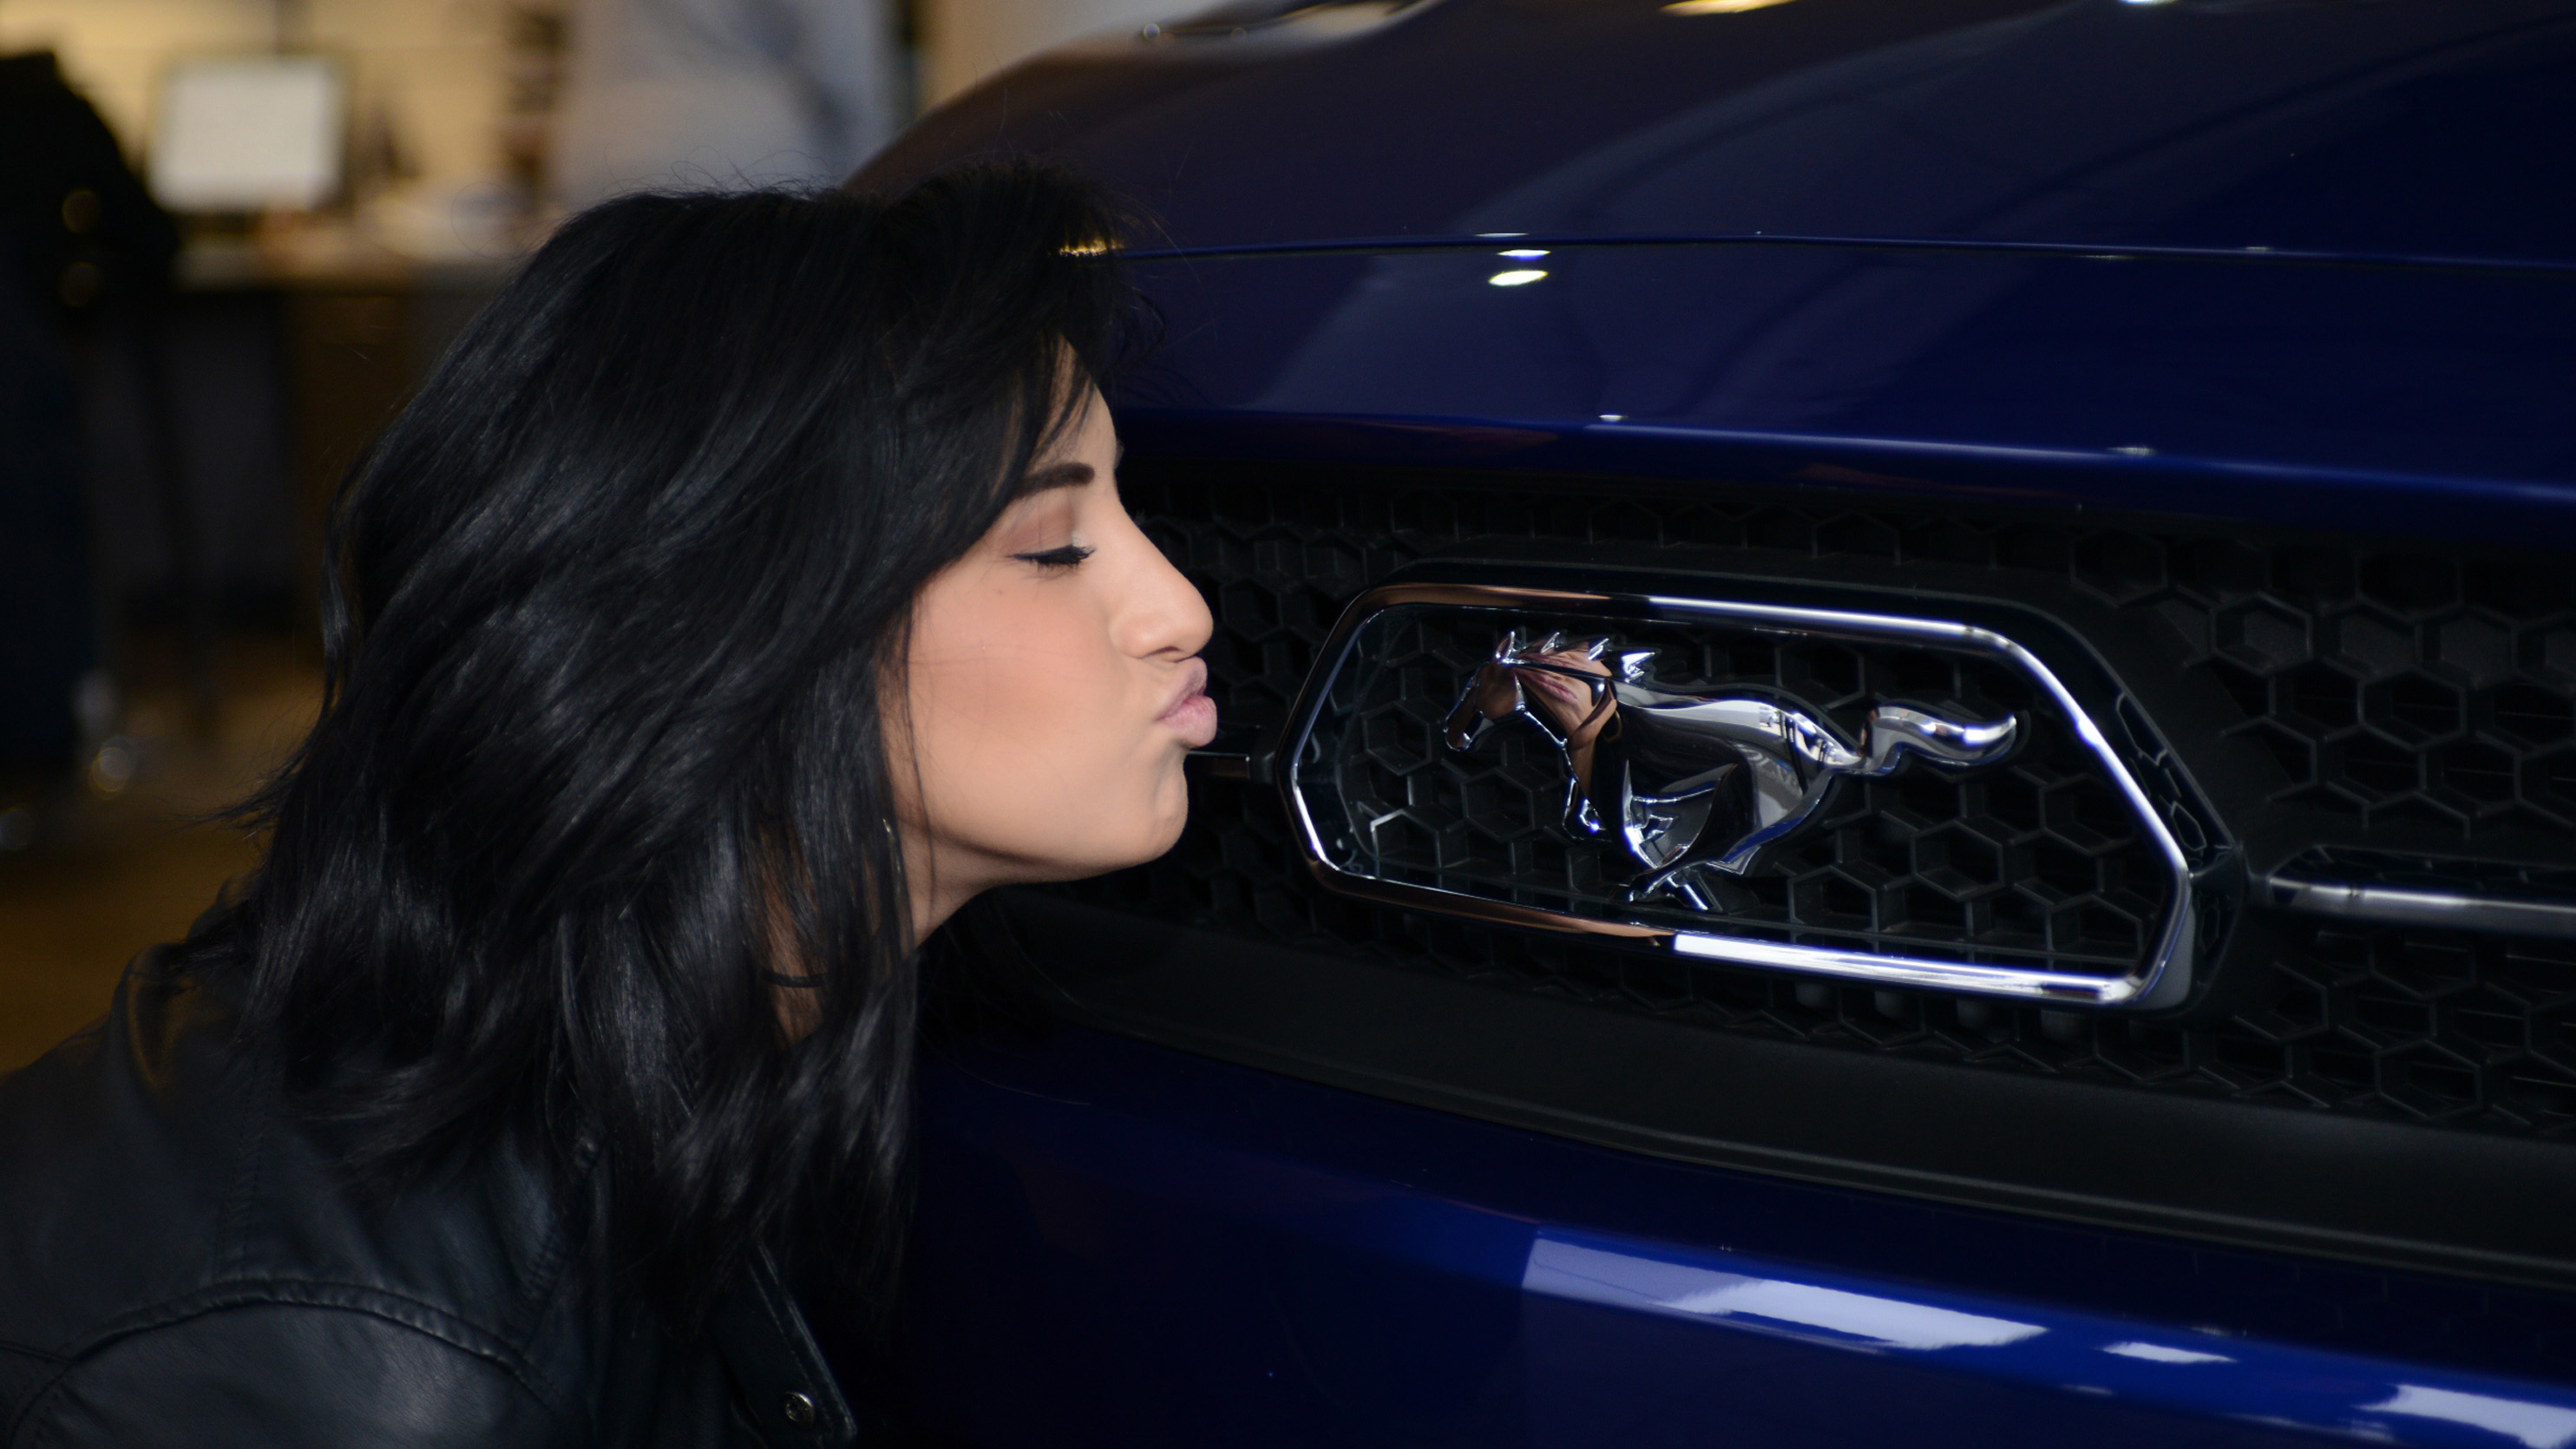 Guess what your ford mustang is a girl car